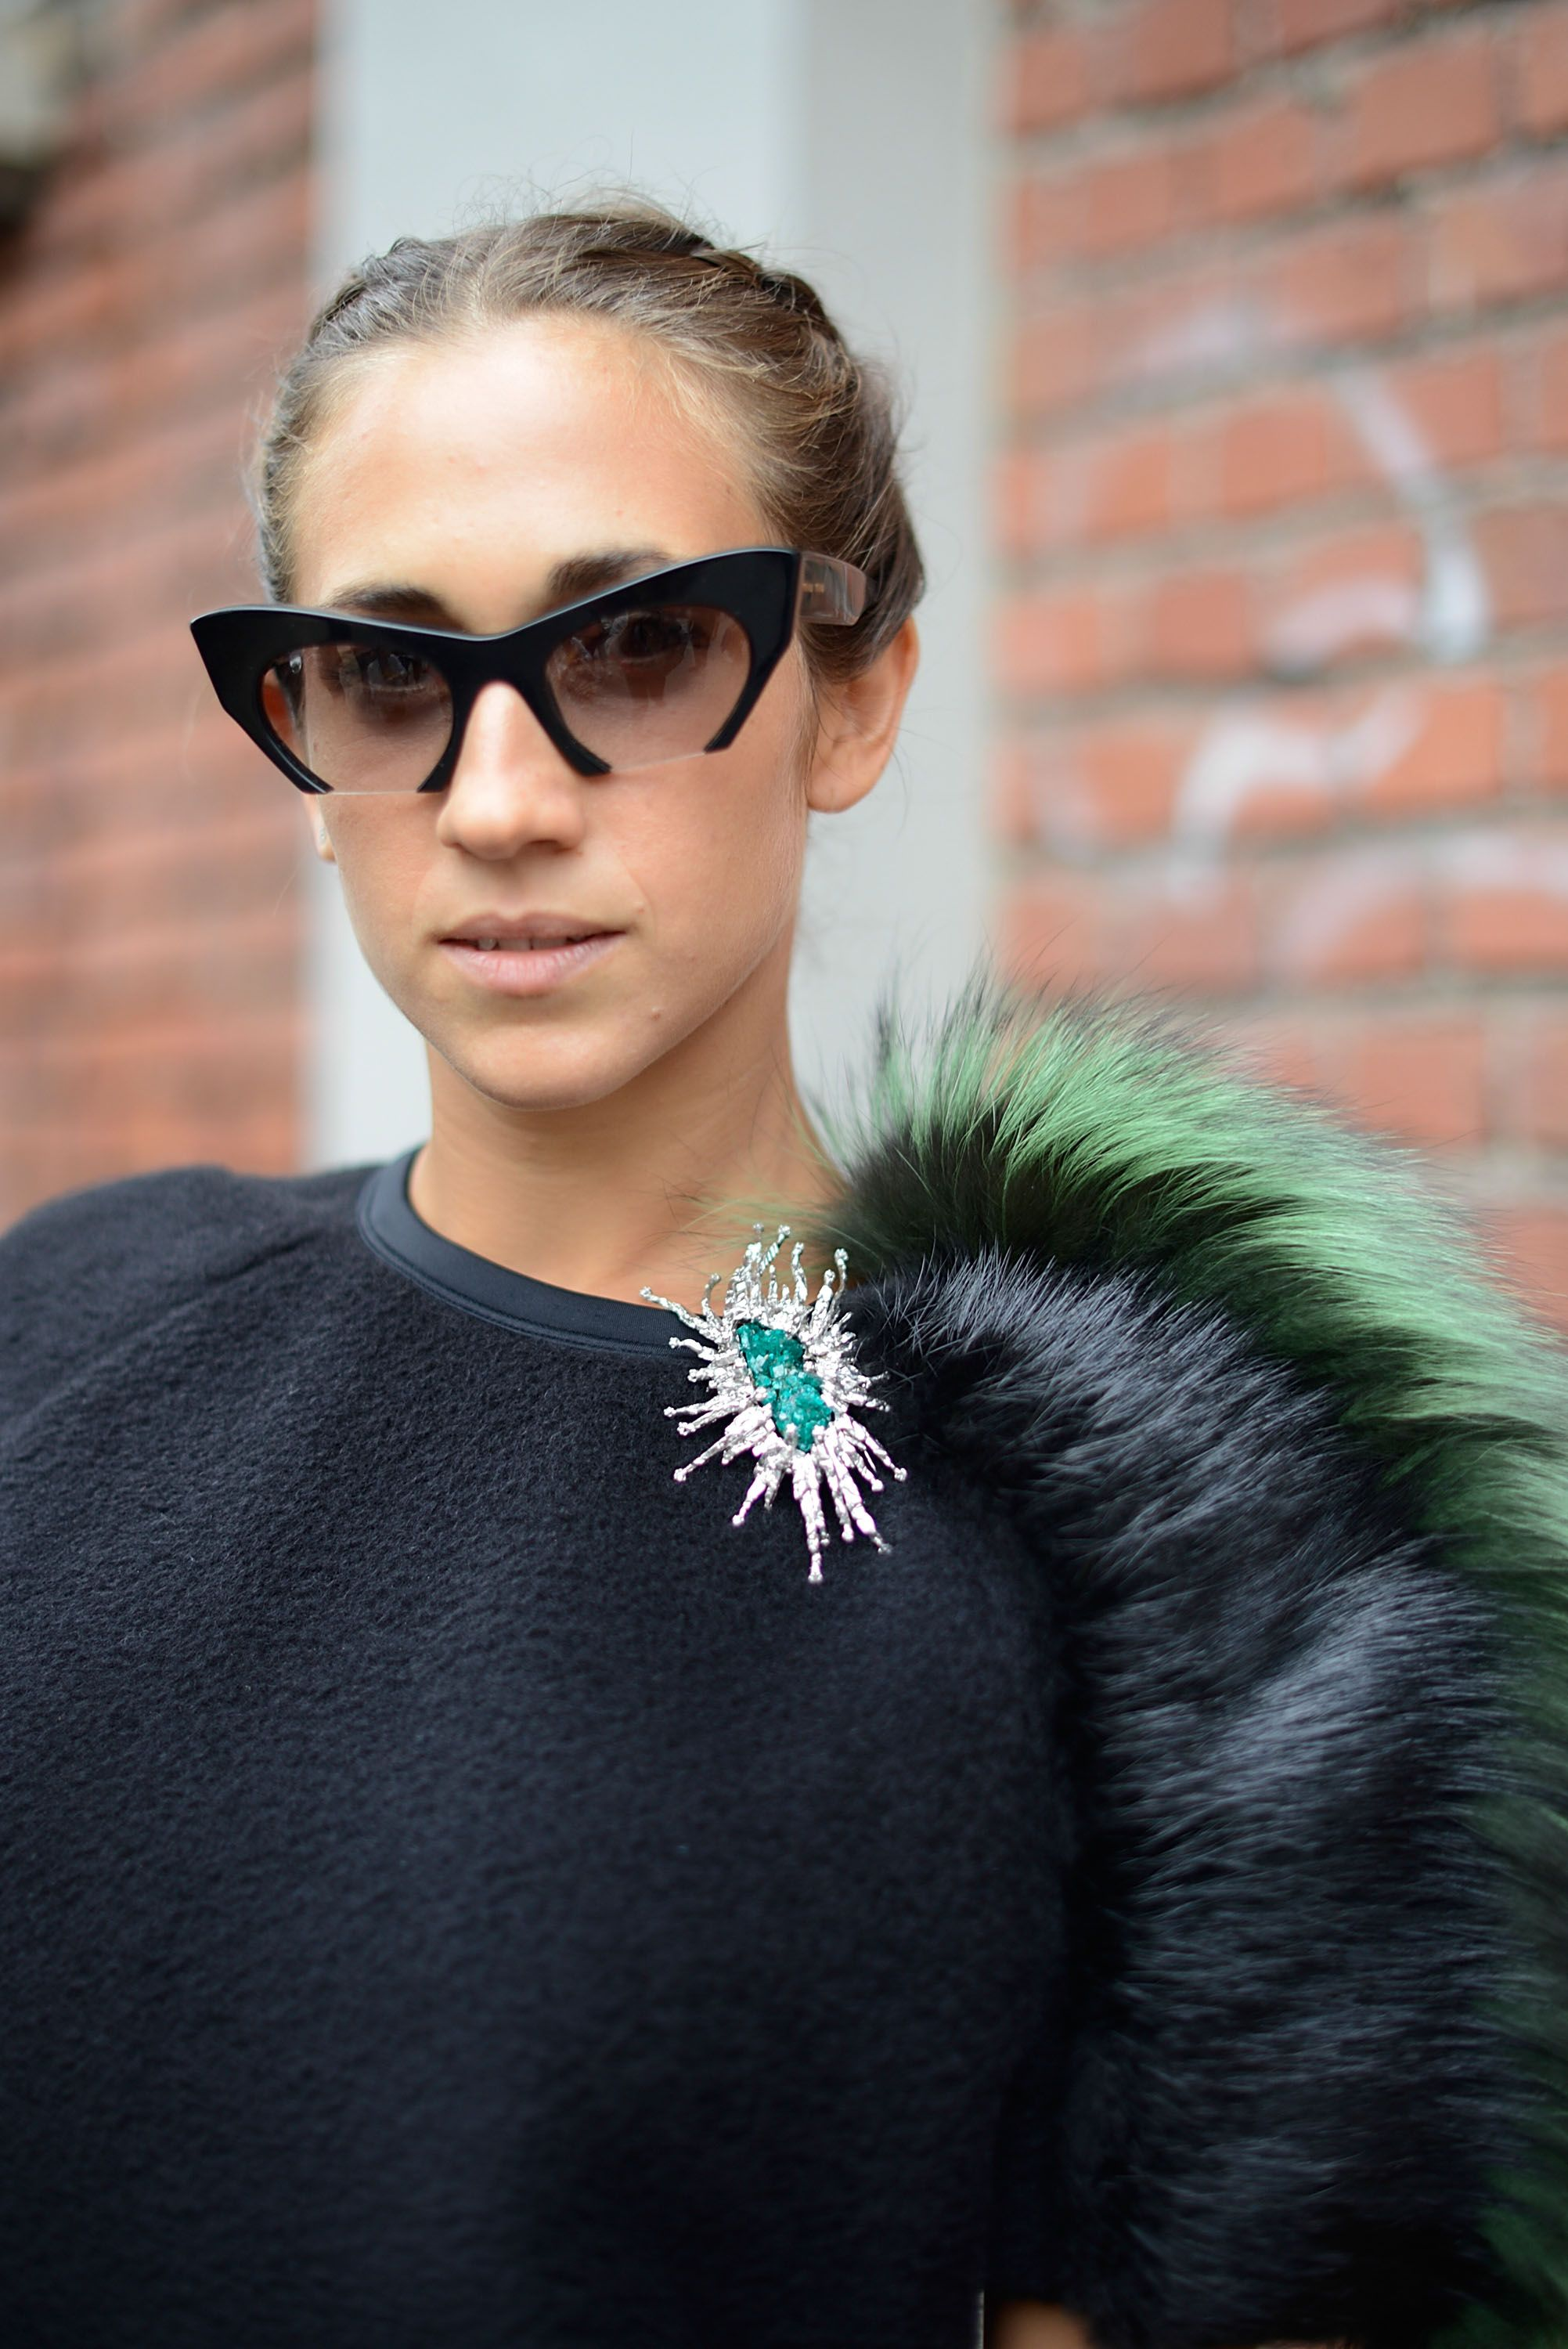 b52602e5bc 14 Modern Ways to Wear a Brooch—And Make It Look Seriously Cool ...